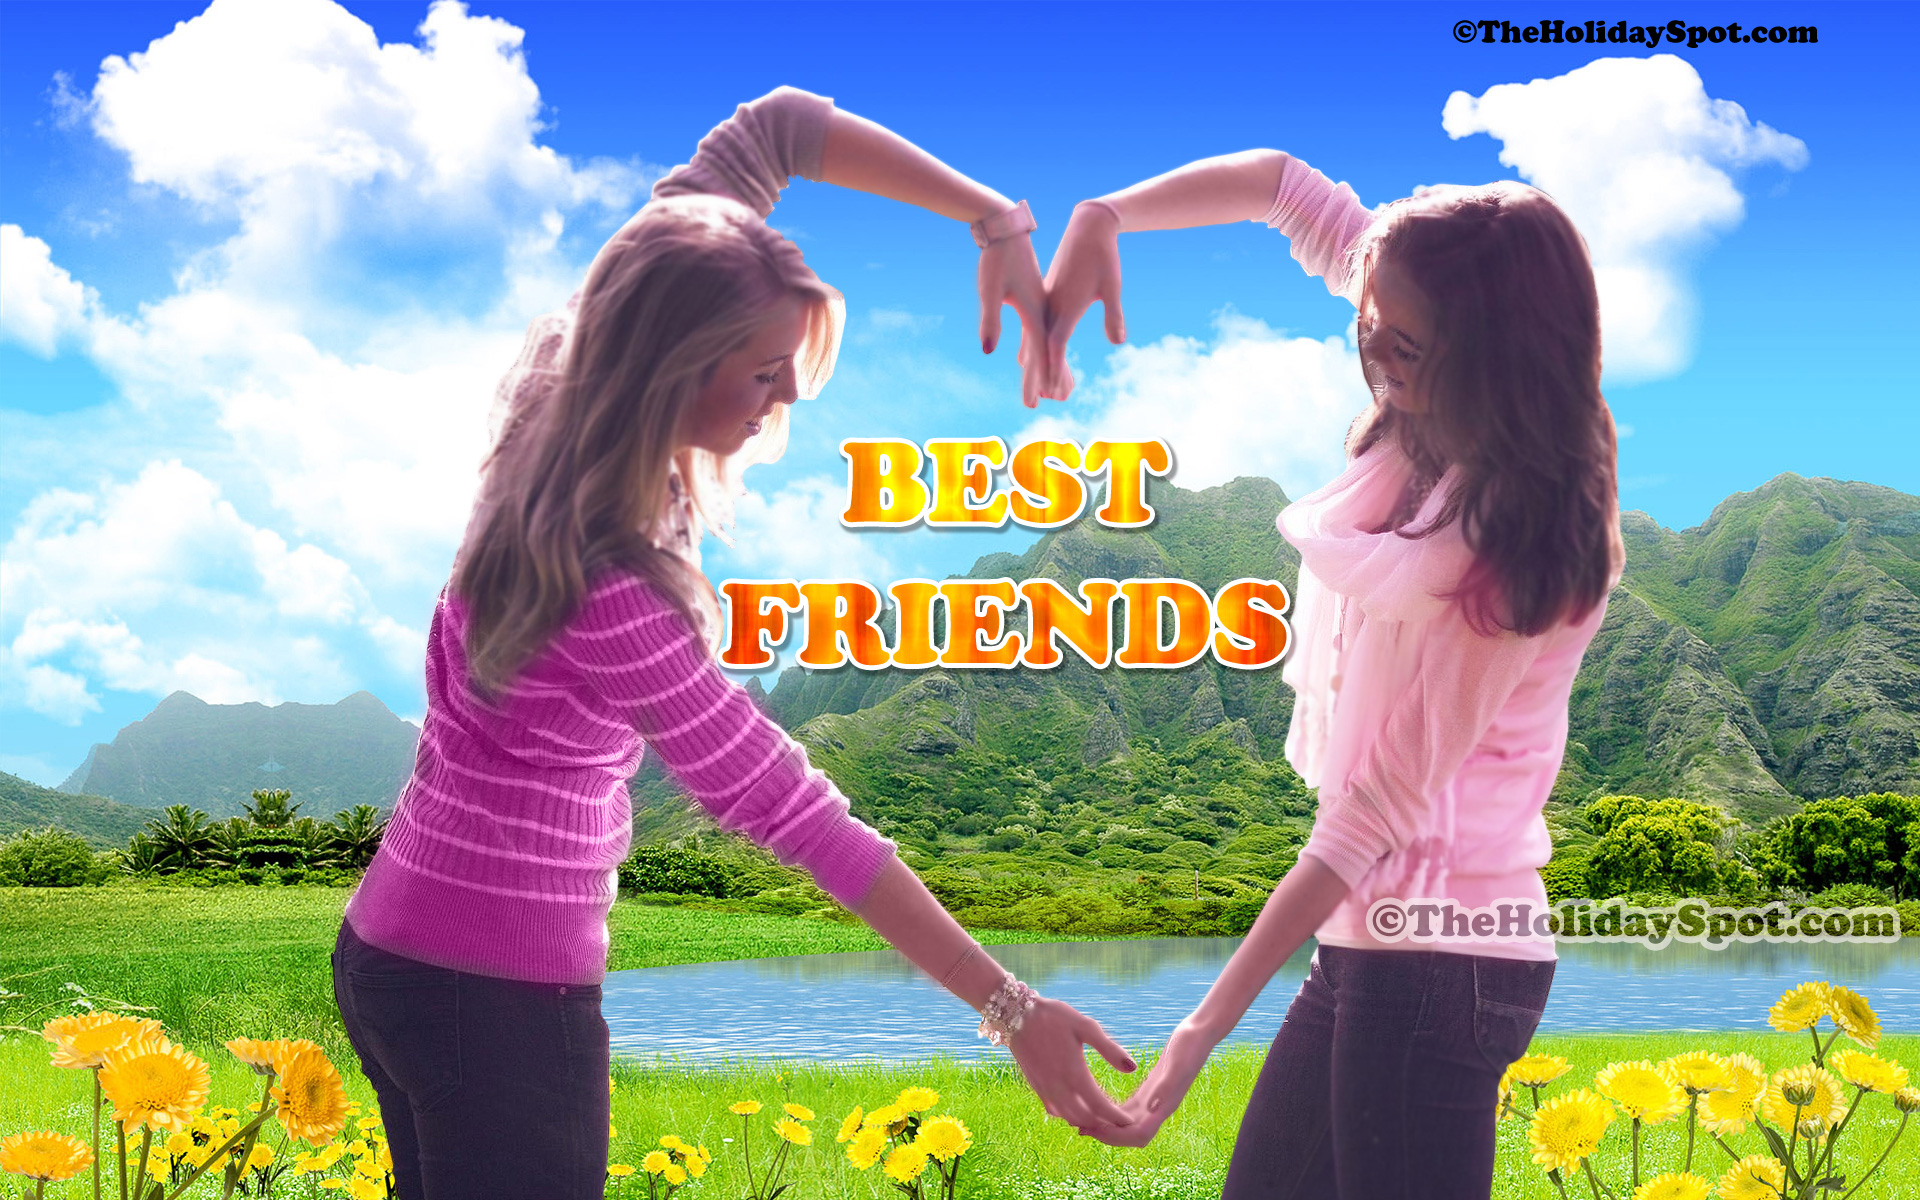 Best Friend Quotes Images In Hd : Friendship wallpapers and backgrounds in hd